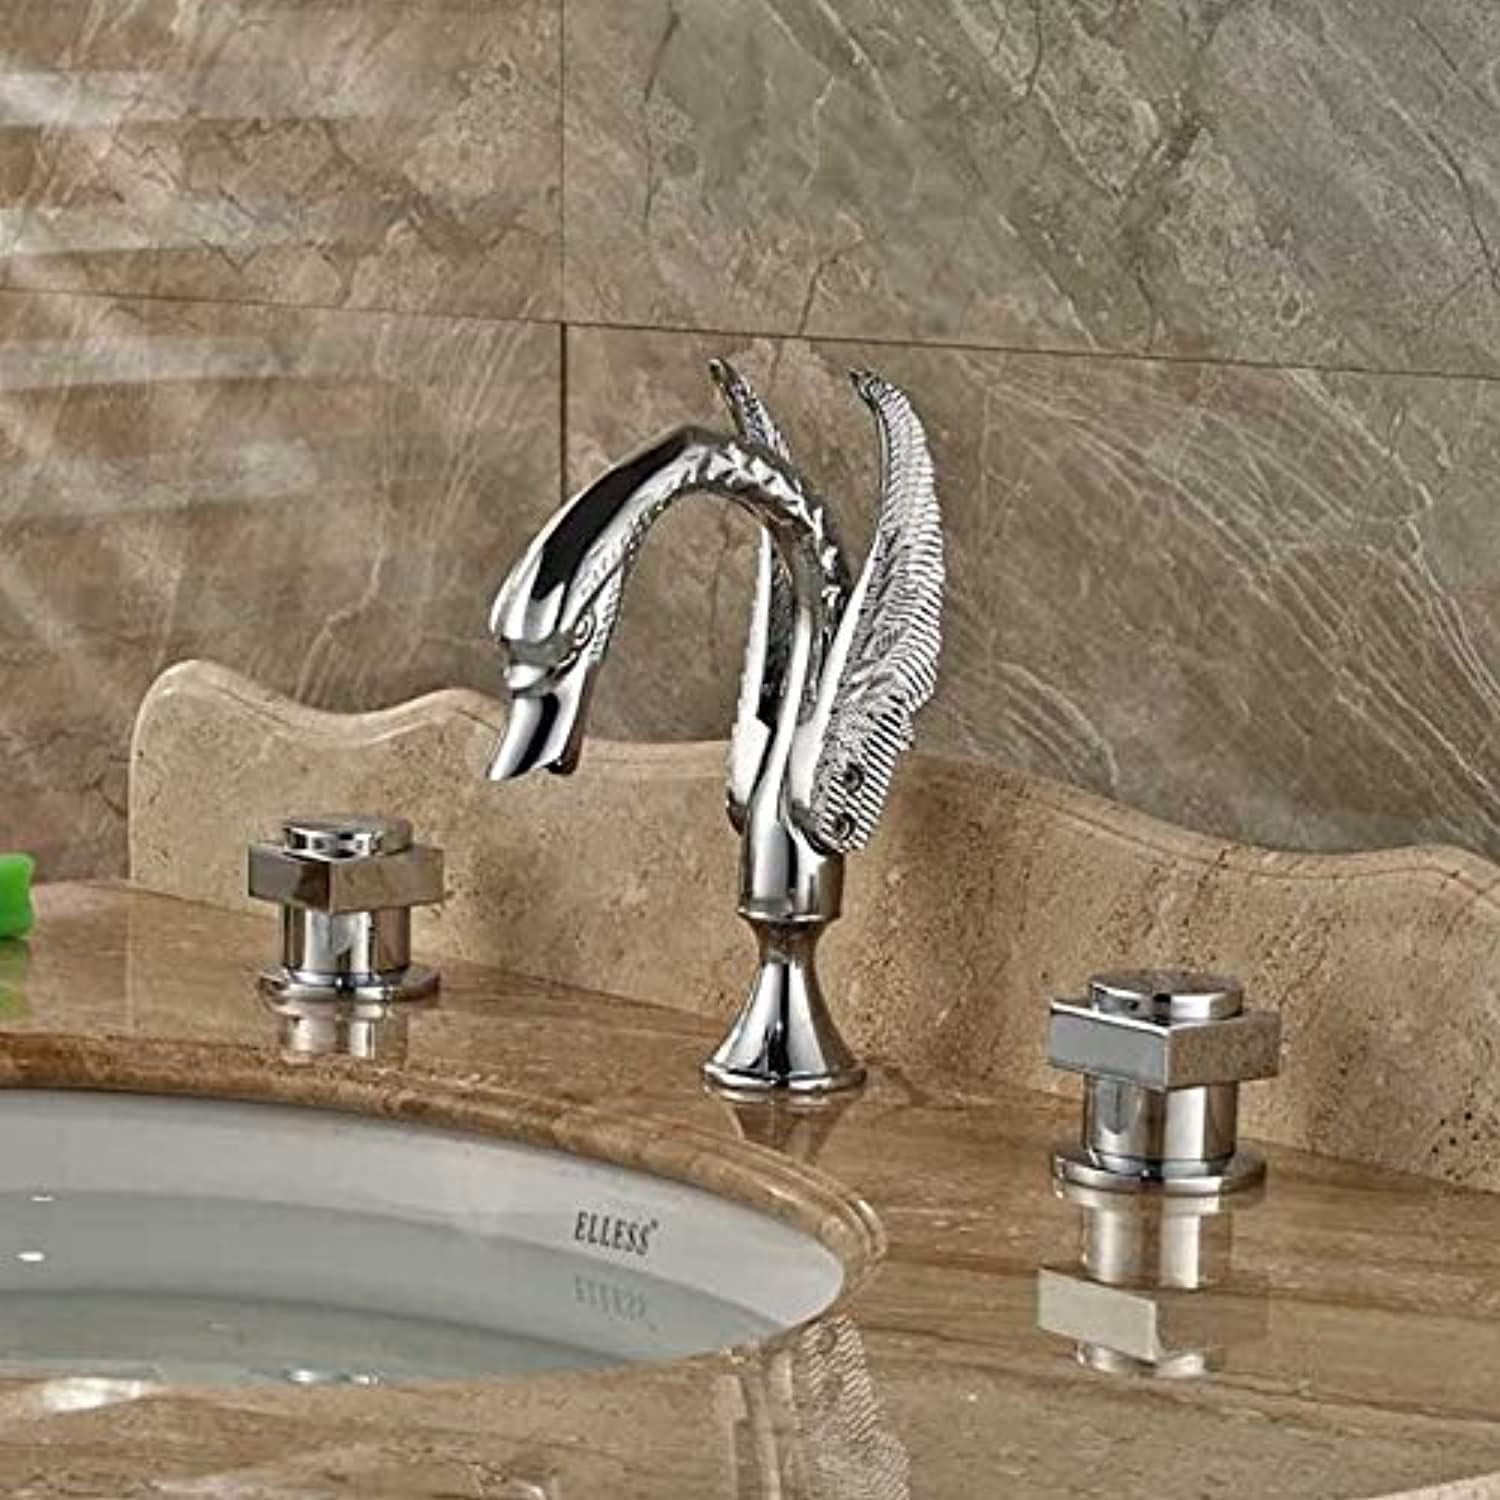 Maifeini The Shape Of The Swan Bathrooms Are Generally Basin Mixer Brass Chrome-Plated Double-Handle Basin Deck, Style 2